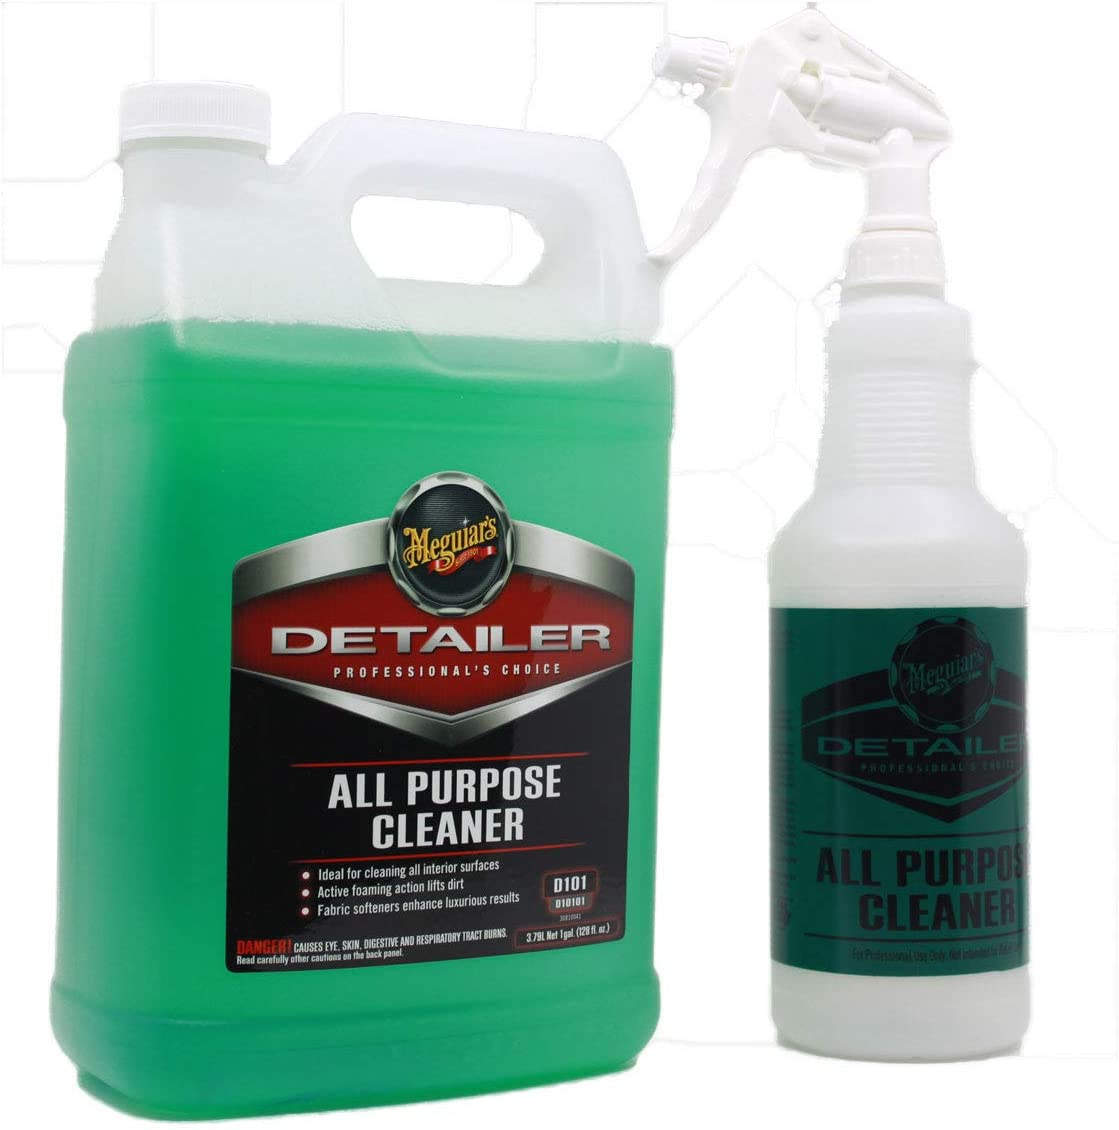 PBMG Meguiars All Purpose Cleaner 128oz & All Purpose Cleaner Bottle with Sprayer